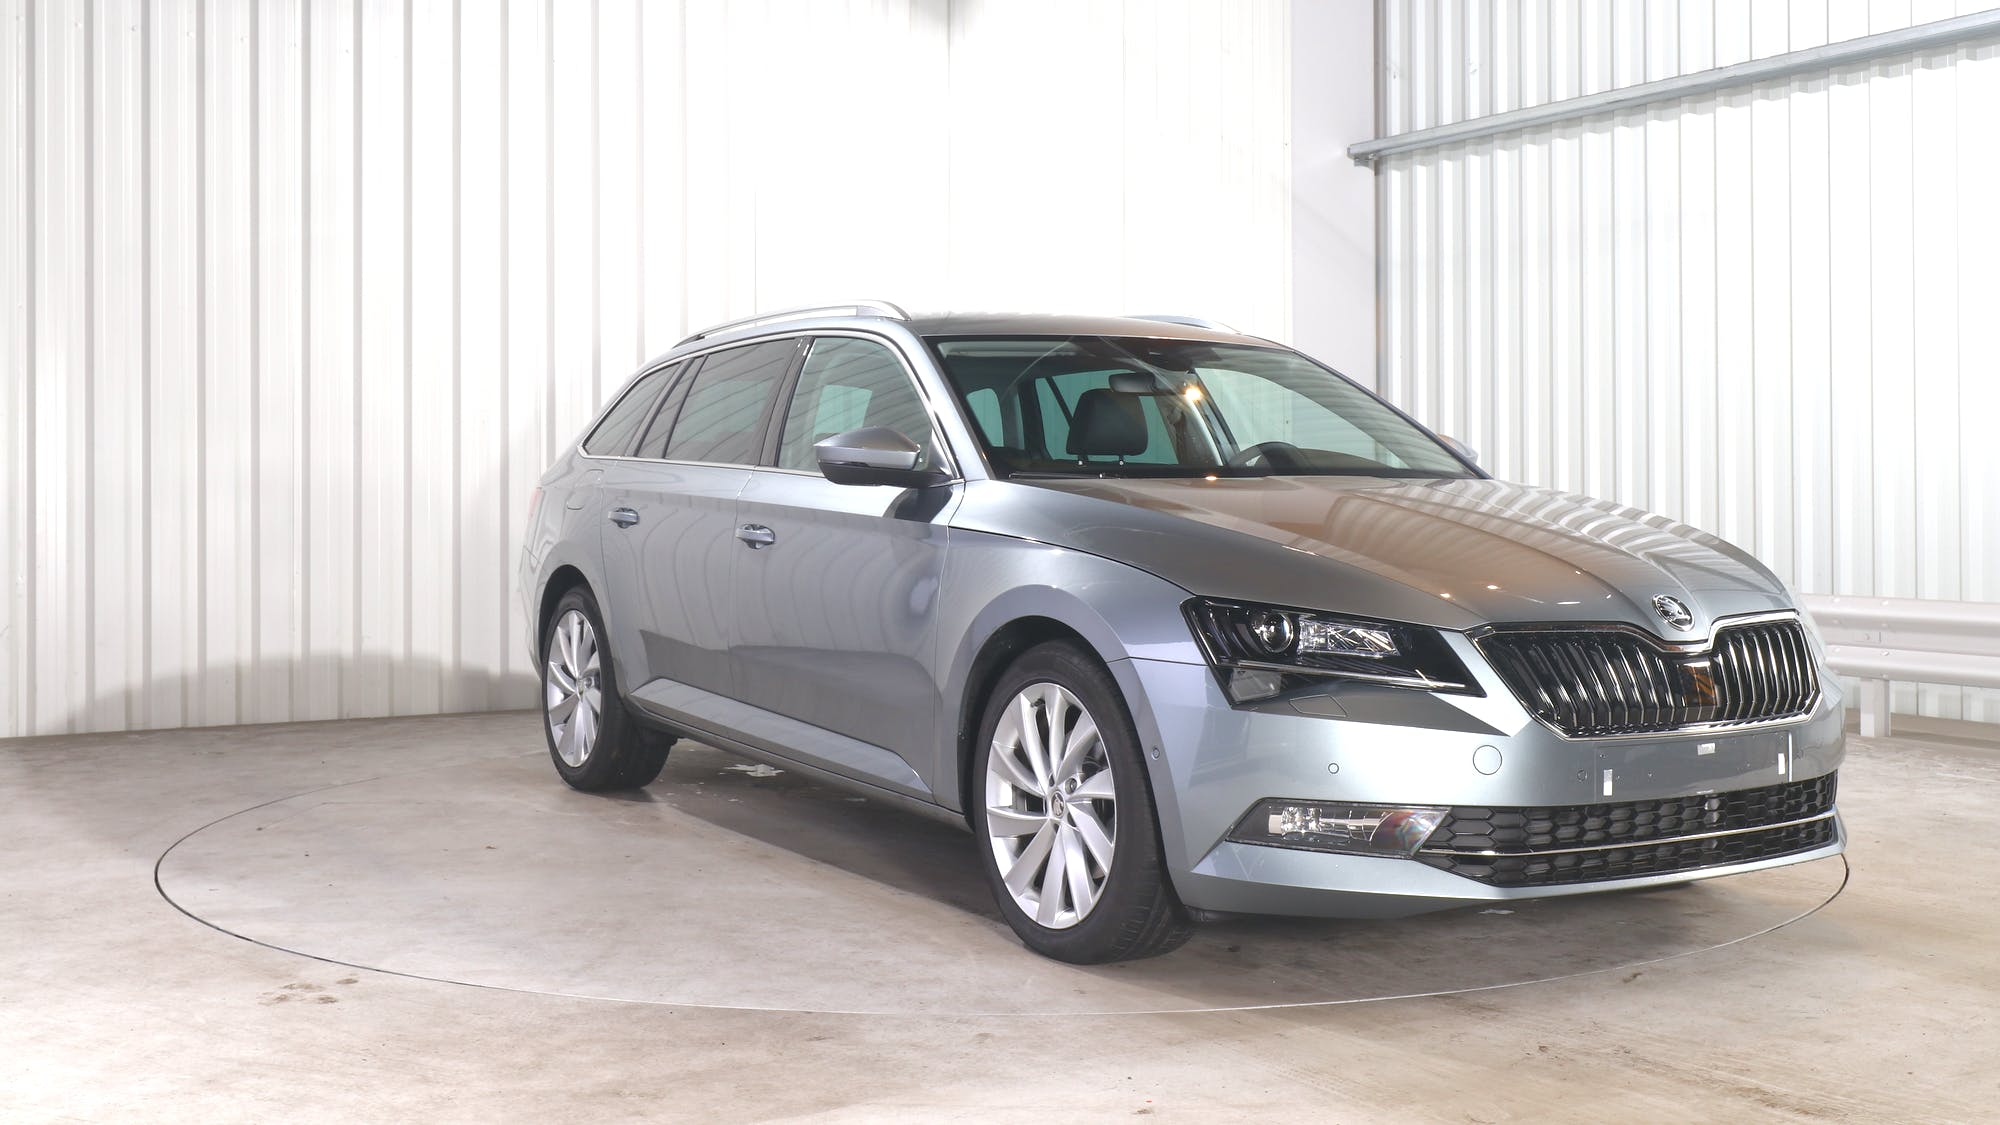 SKODA SUPERB COMBI leasing exterior 10